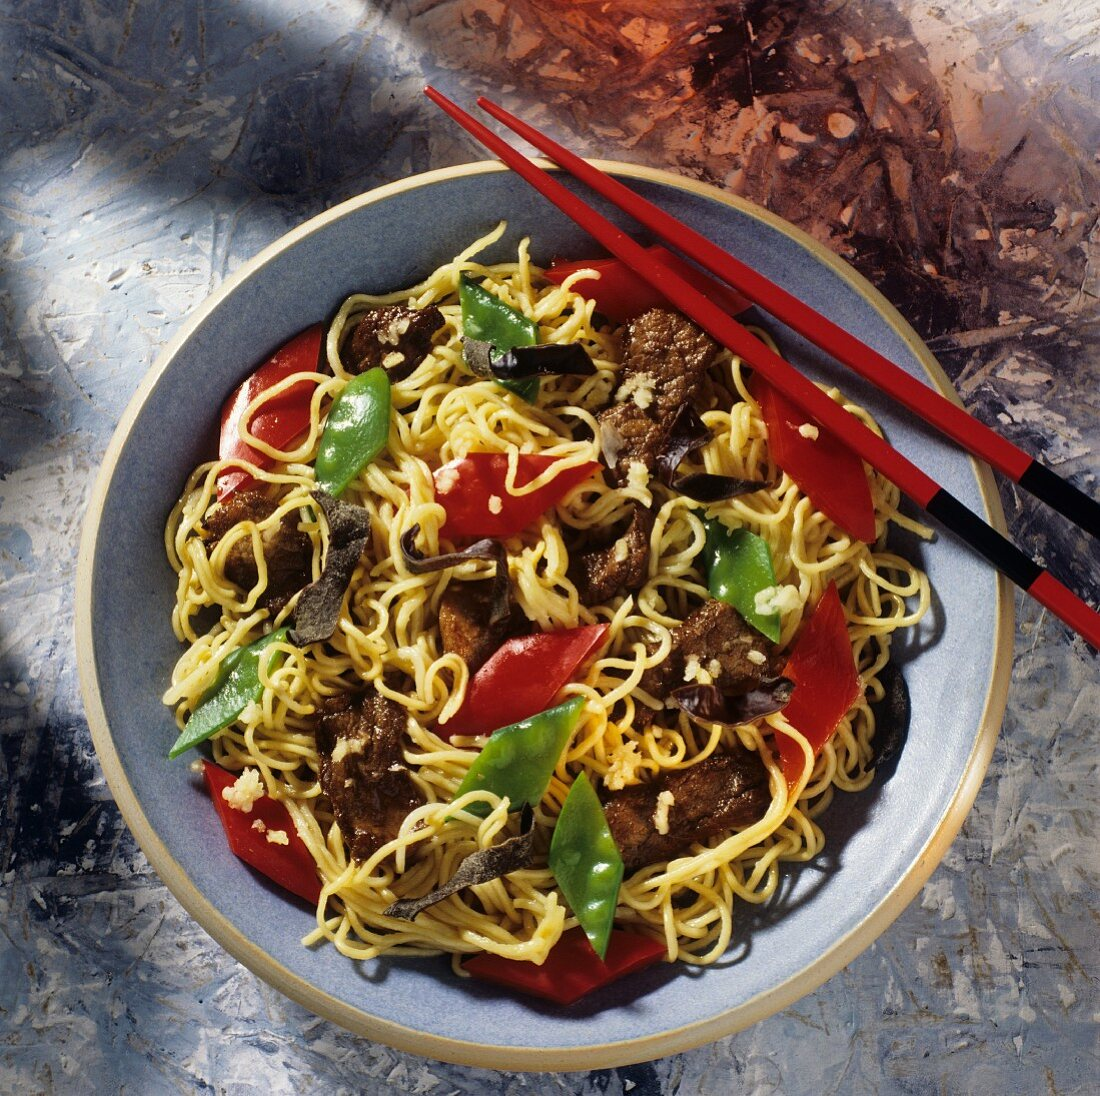 Chinese noodle stir-fry with meat, peppers, mangetouts